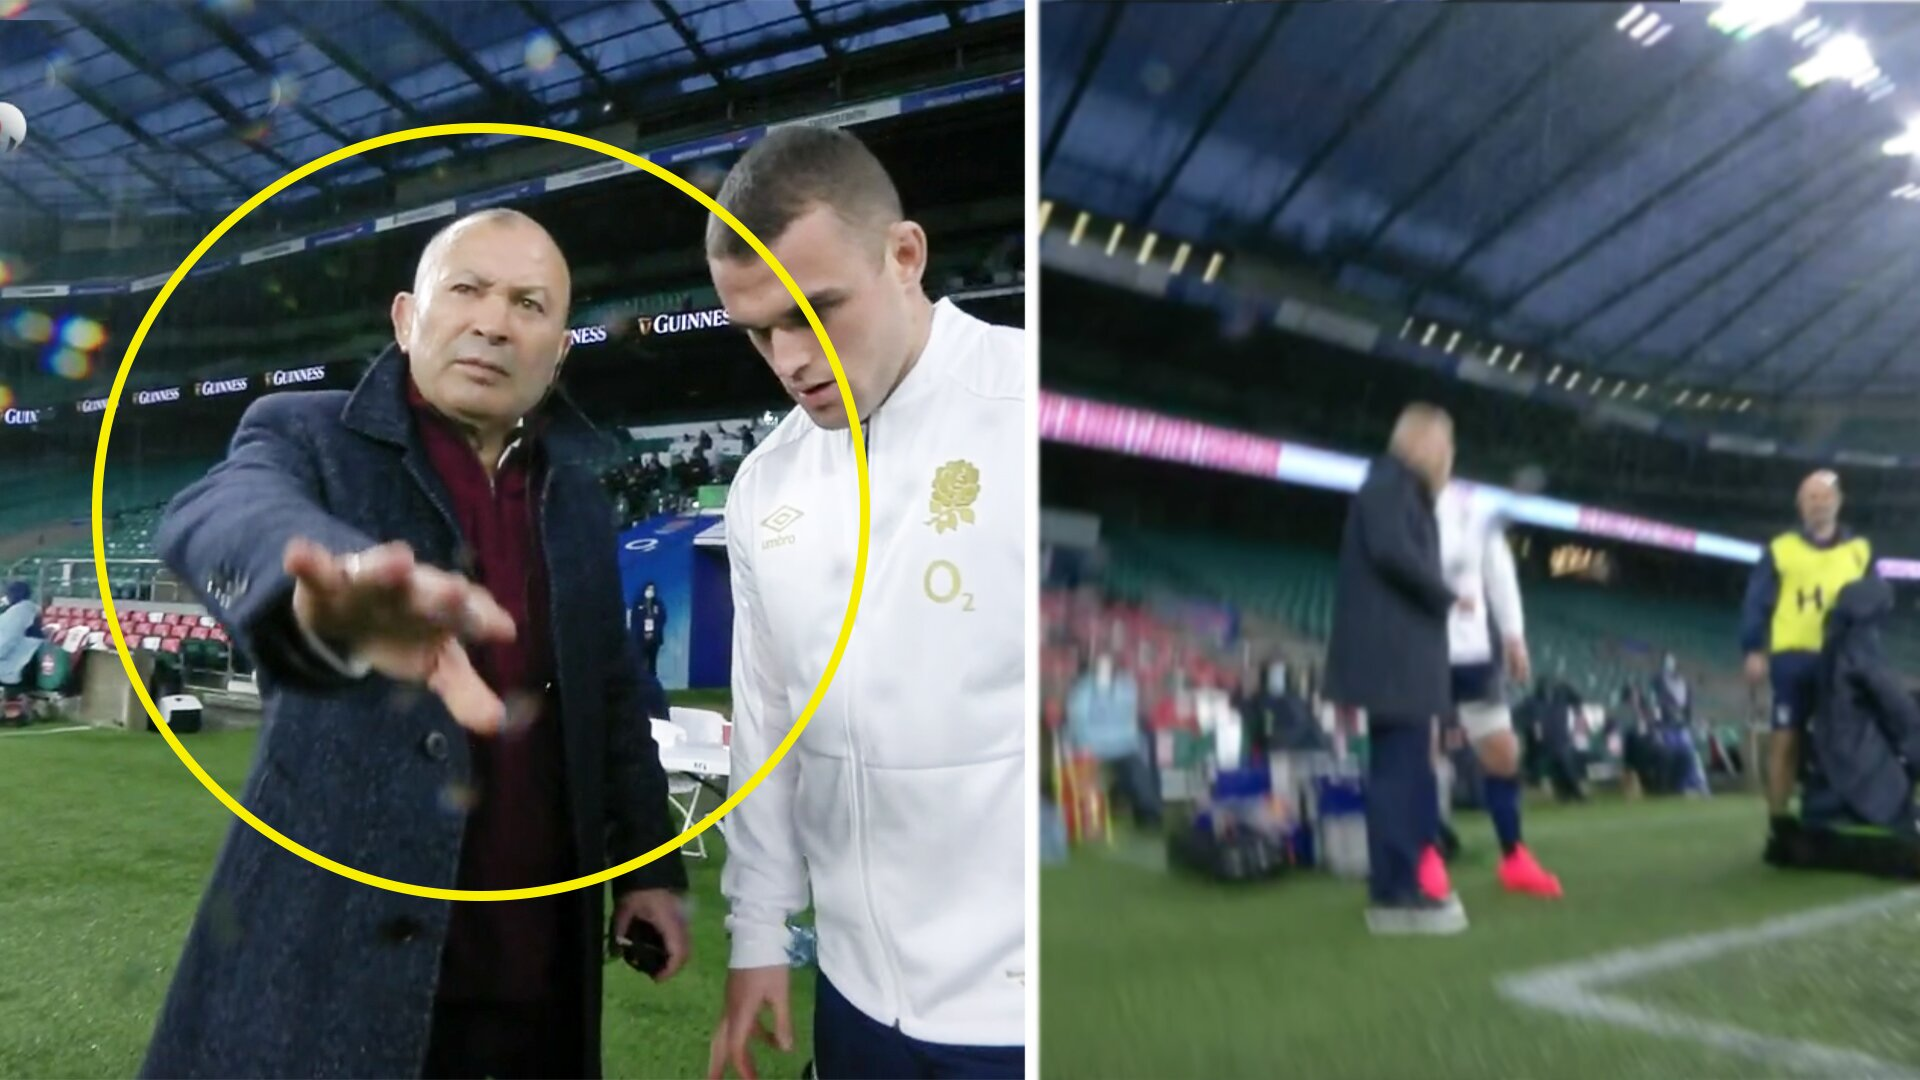 Eddie Jones orders cameraman to get out of the way and he falls over in bizarre touchline altercation